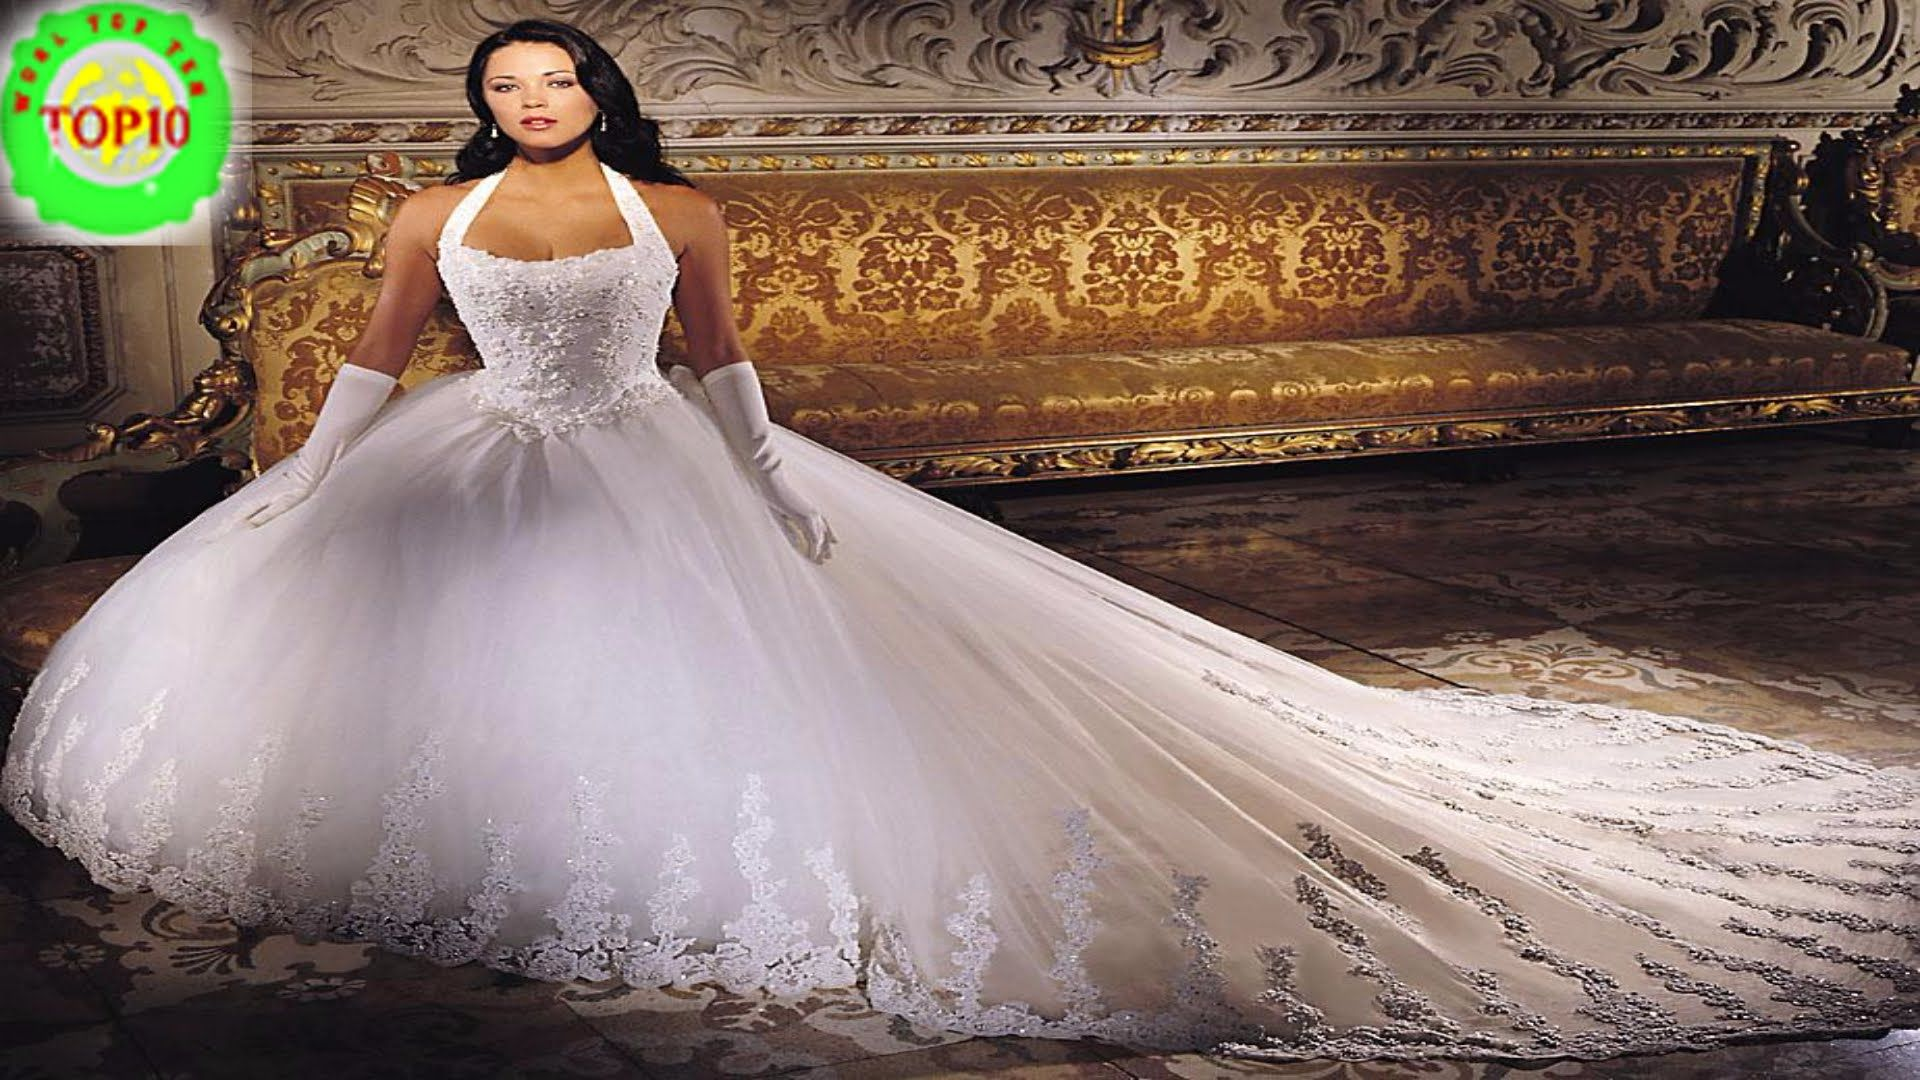 Top 10 Most Expensive Wedding Dress in the World (With